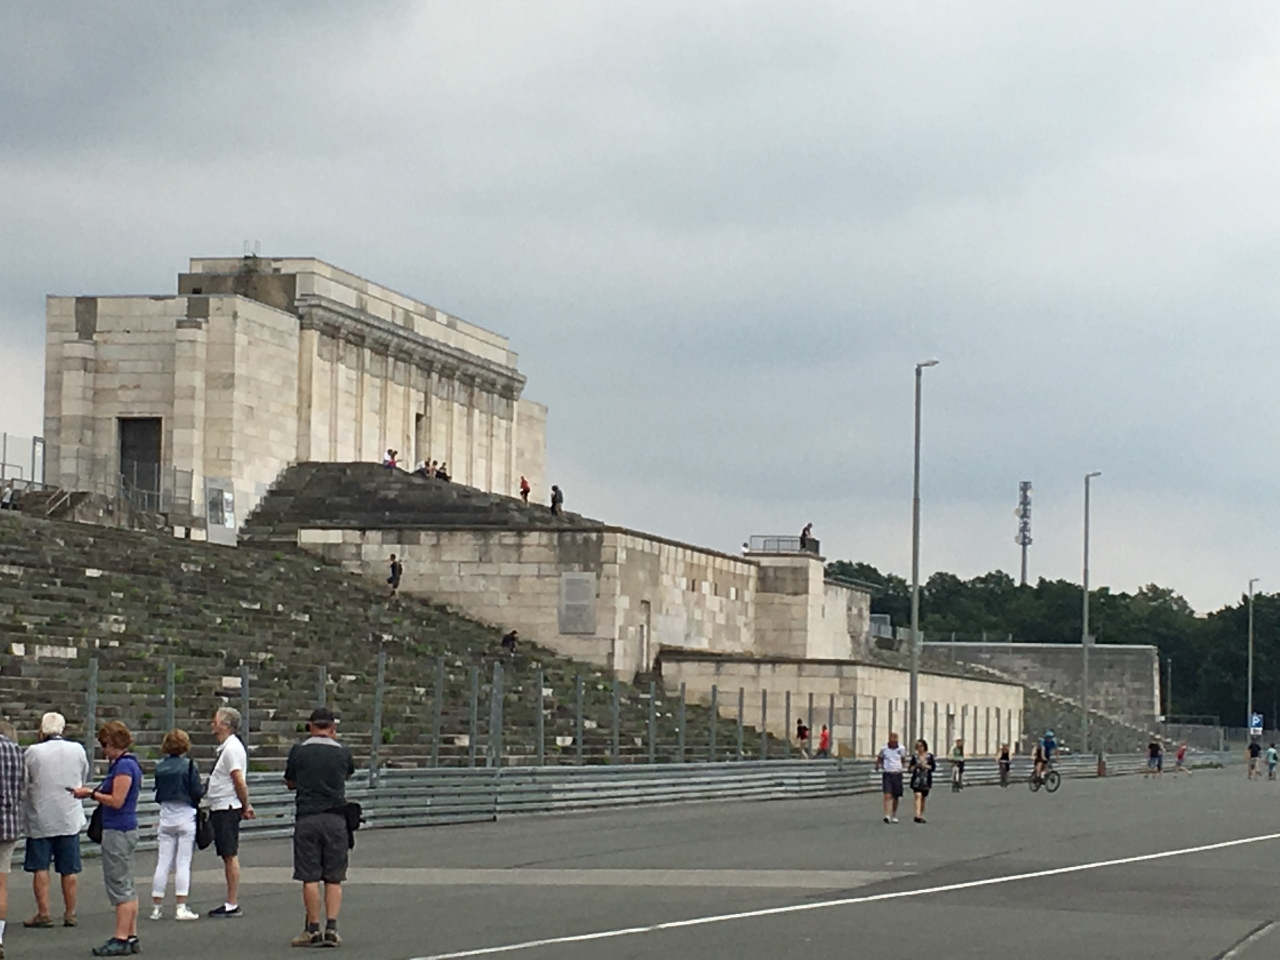 Pivotal to a major part of the 20th century, the Nuremburg rally grounds form part of a city tour.